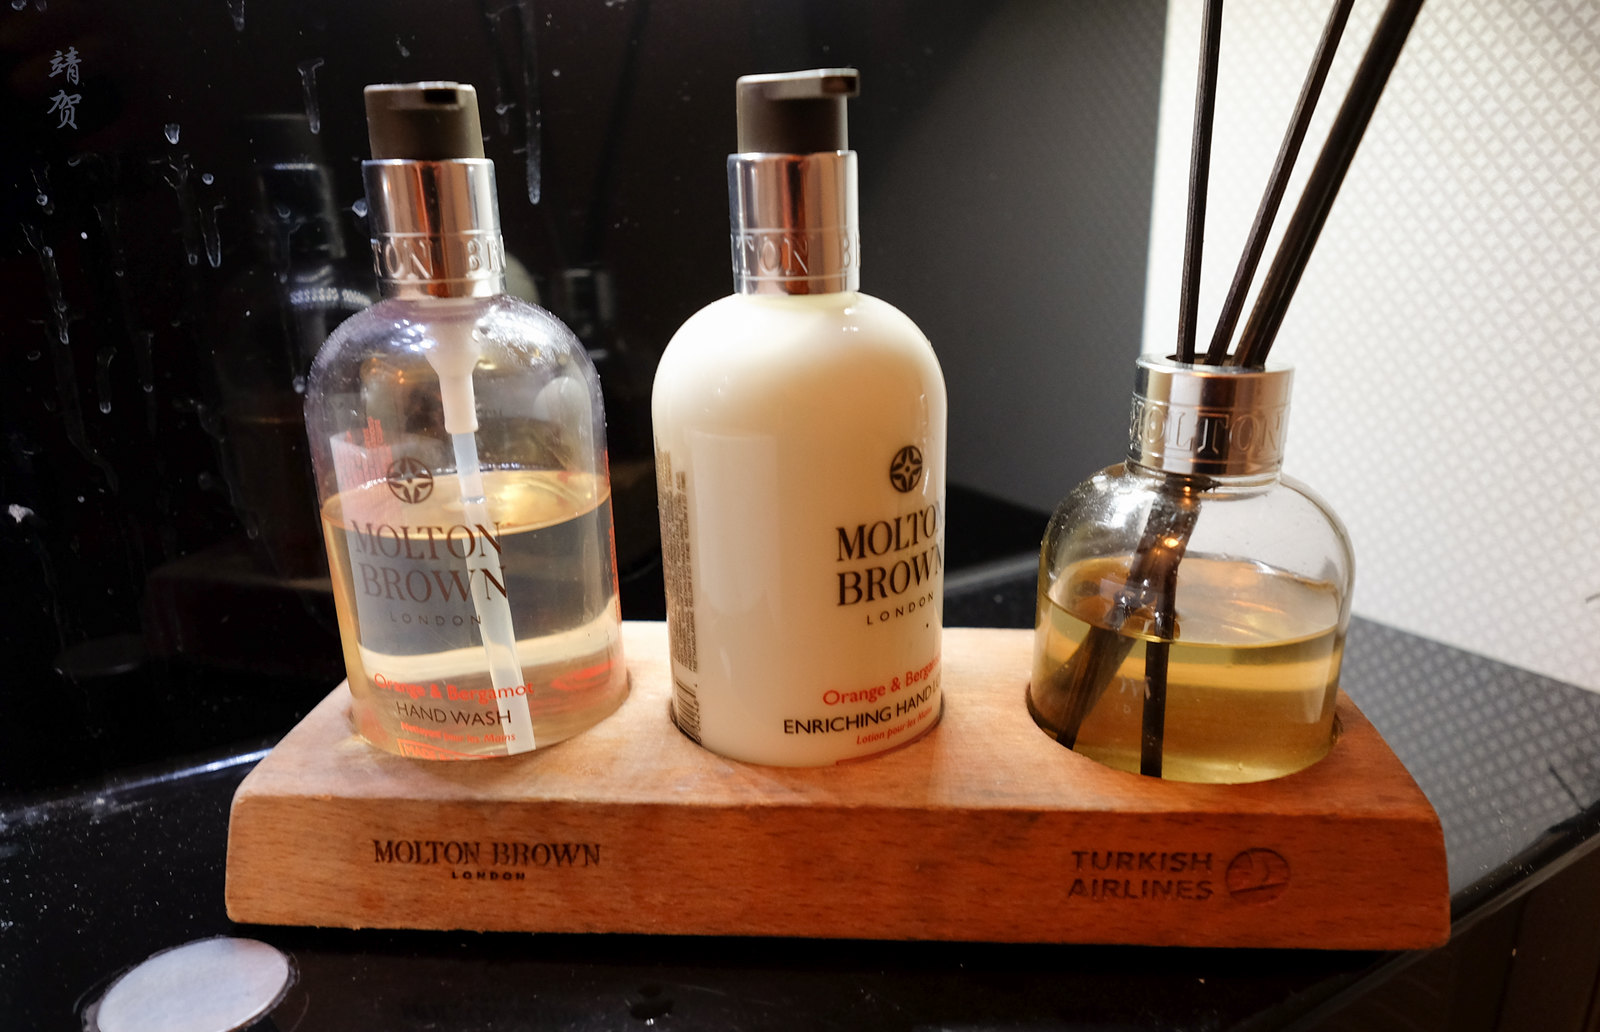 Molton Brown lotion and soap